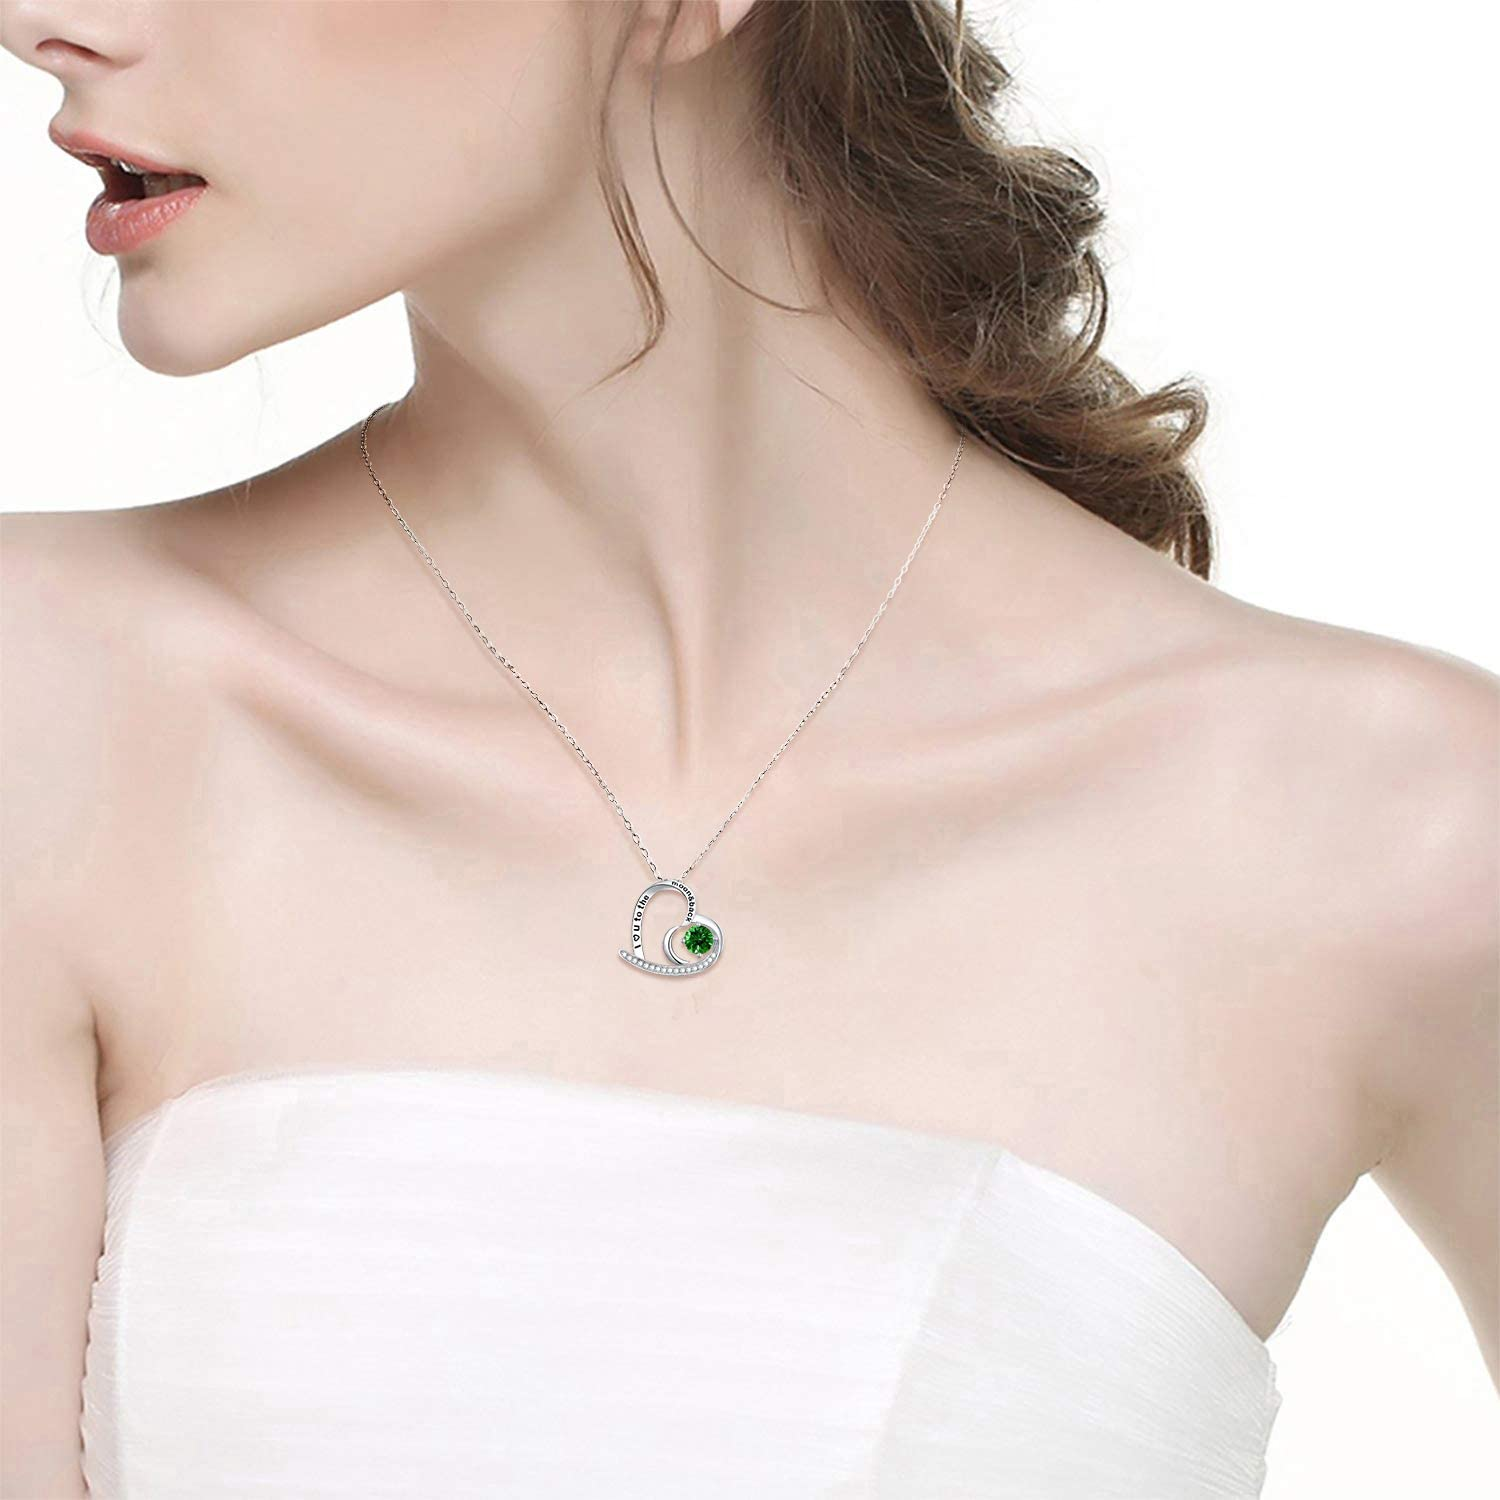 Birthday Gifts Necklace for Women Green Emerald Necklace for Wife Mom Birthday Gifts Sterling Silver